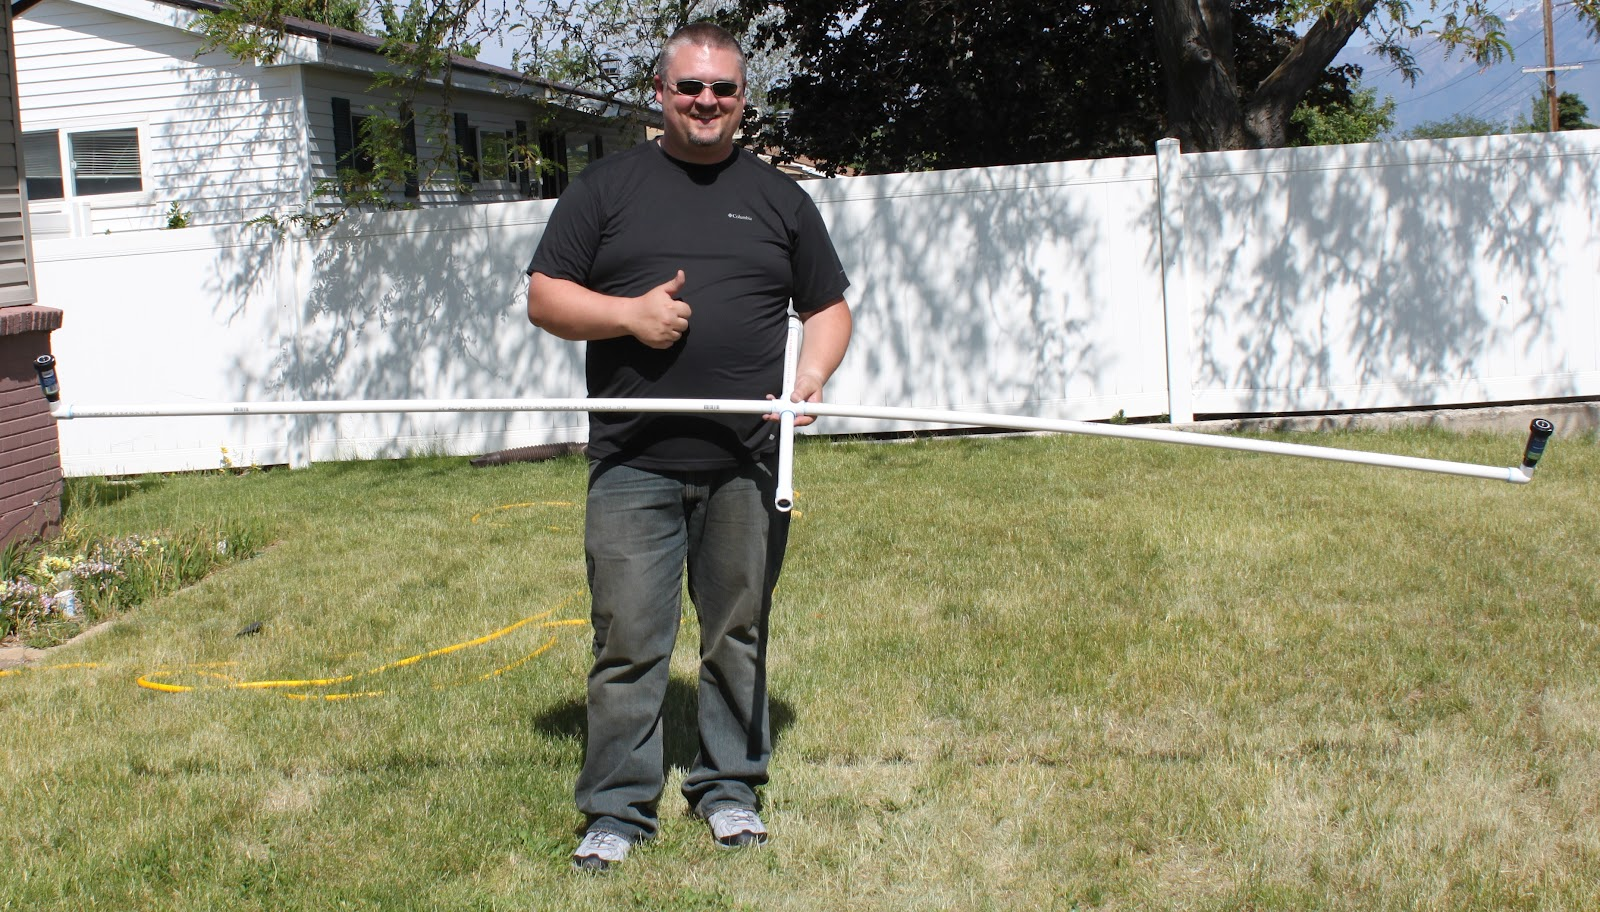 How To Make A Simple Diy Pvc Sprinkler The Crafty Blog Stalker